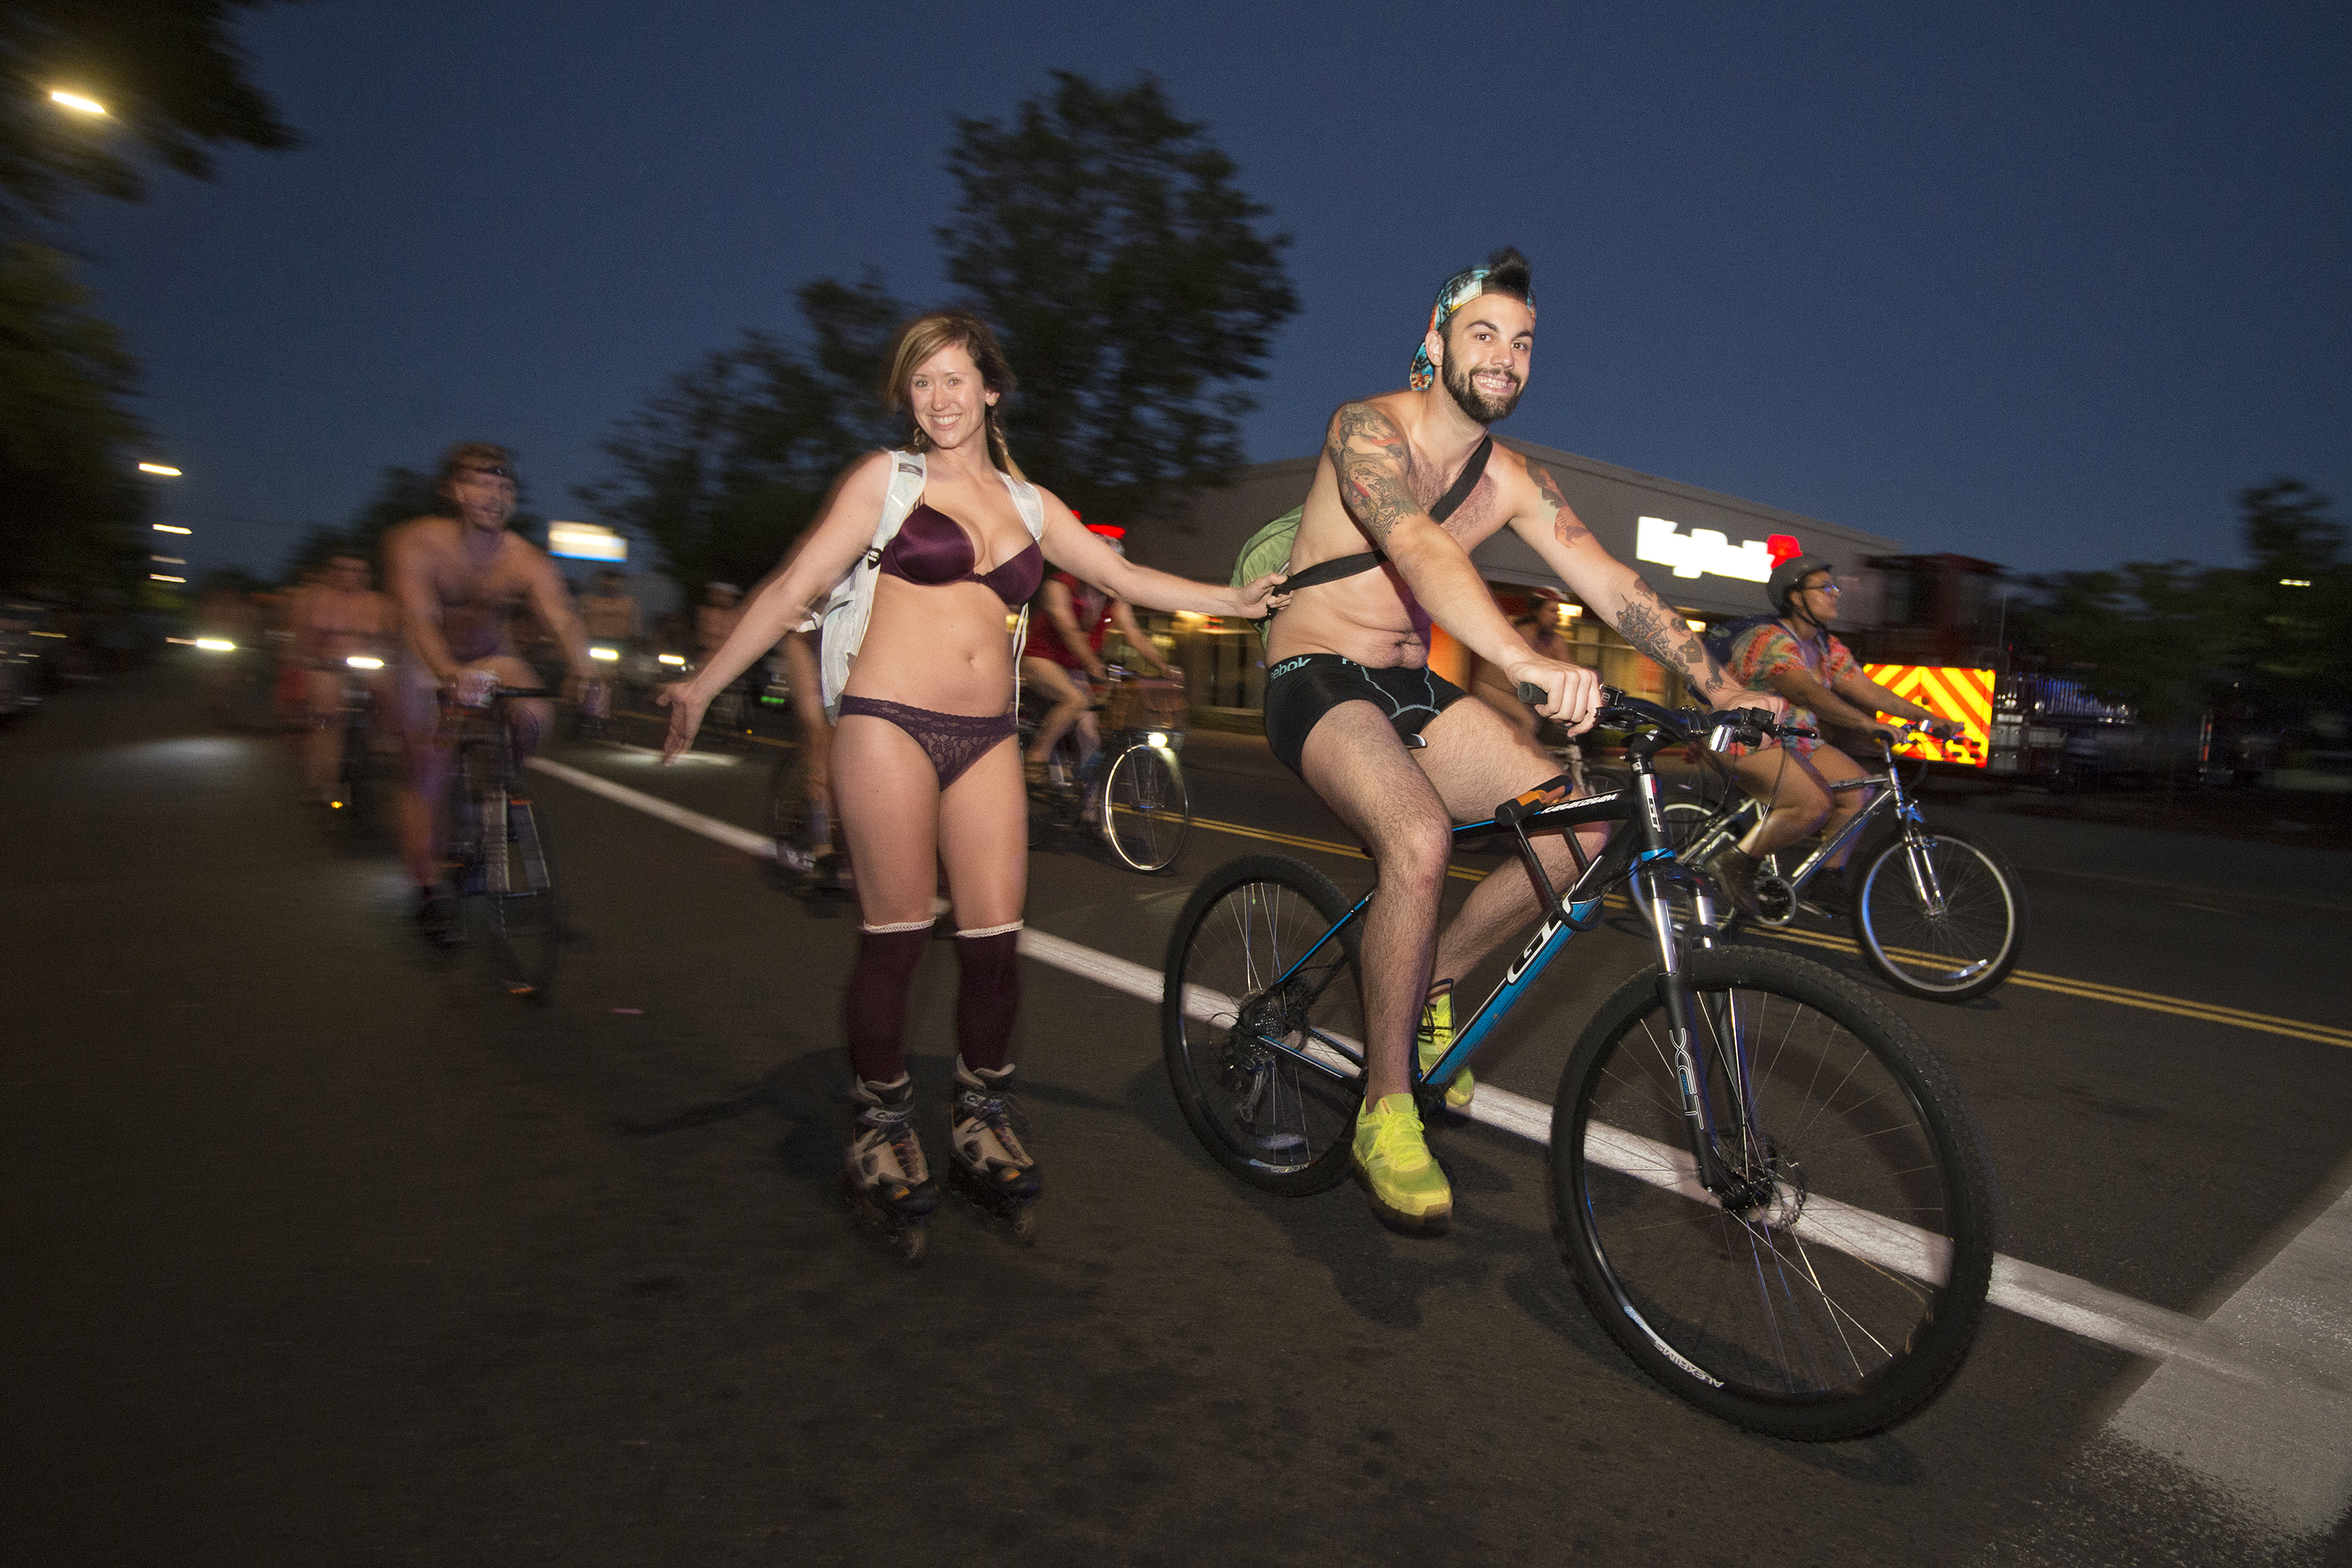 WNBR_WorldNakedBikeRide2016_JeffWalls_DSC4424